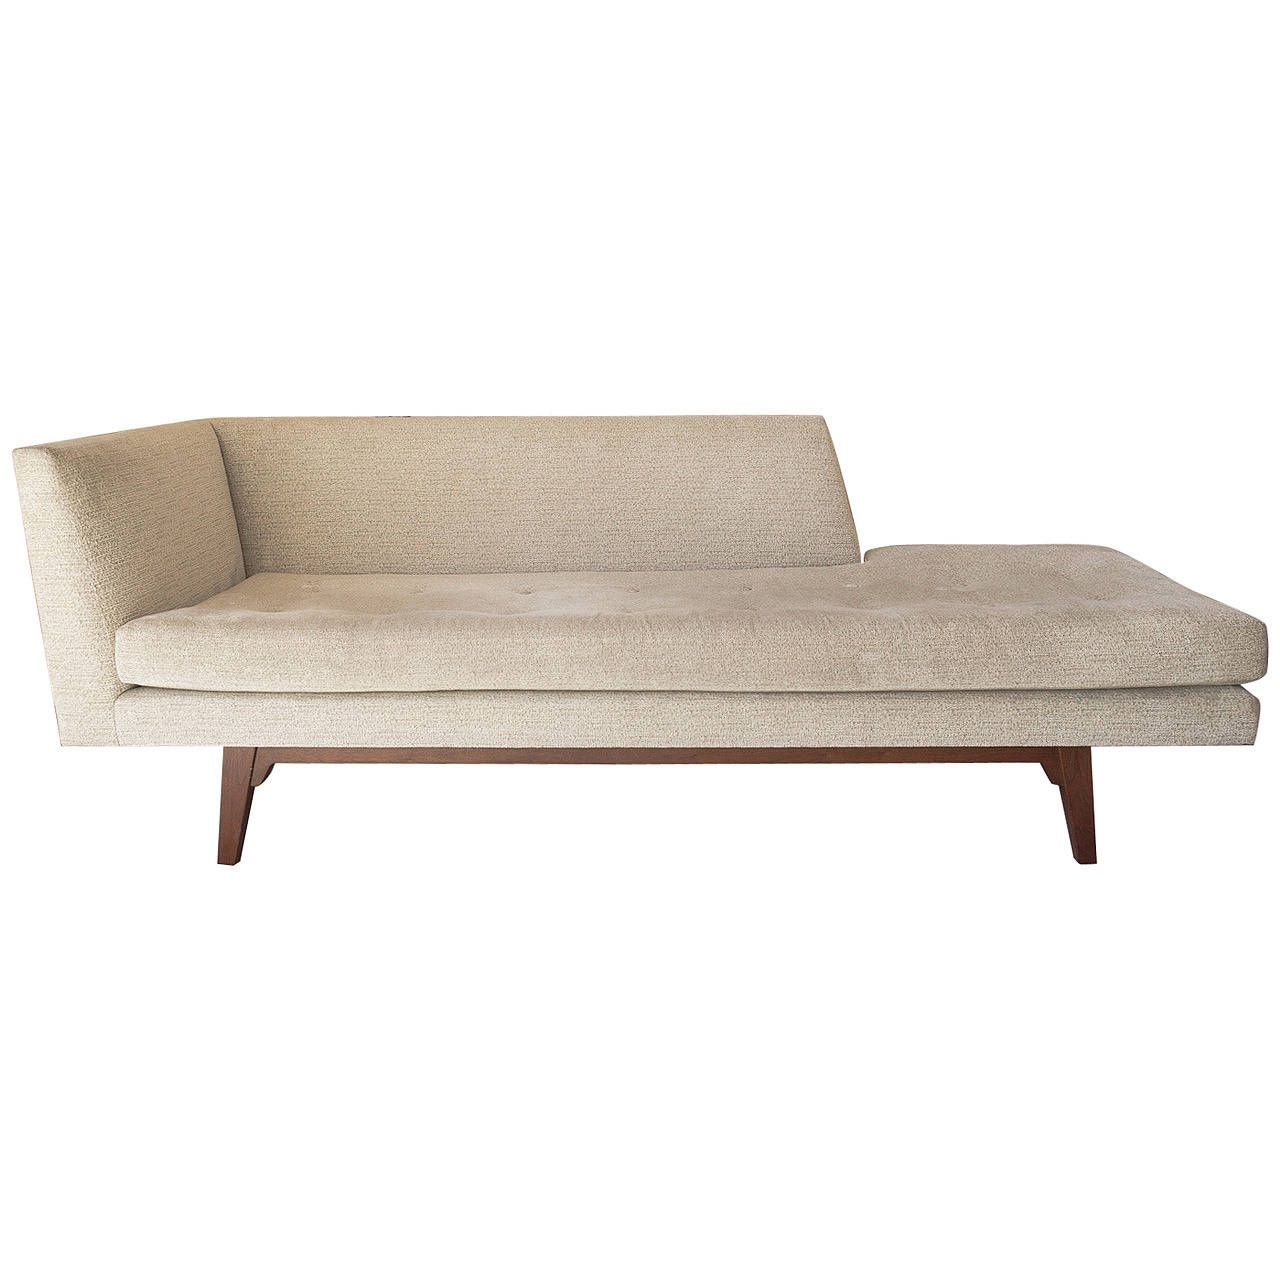 Edward Wormley For Dunbar Chaise Longue